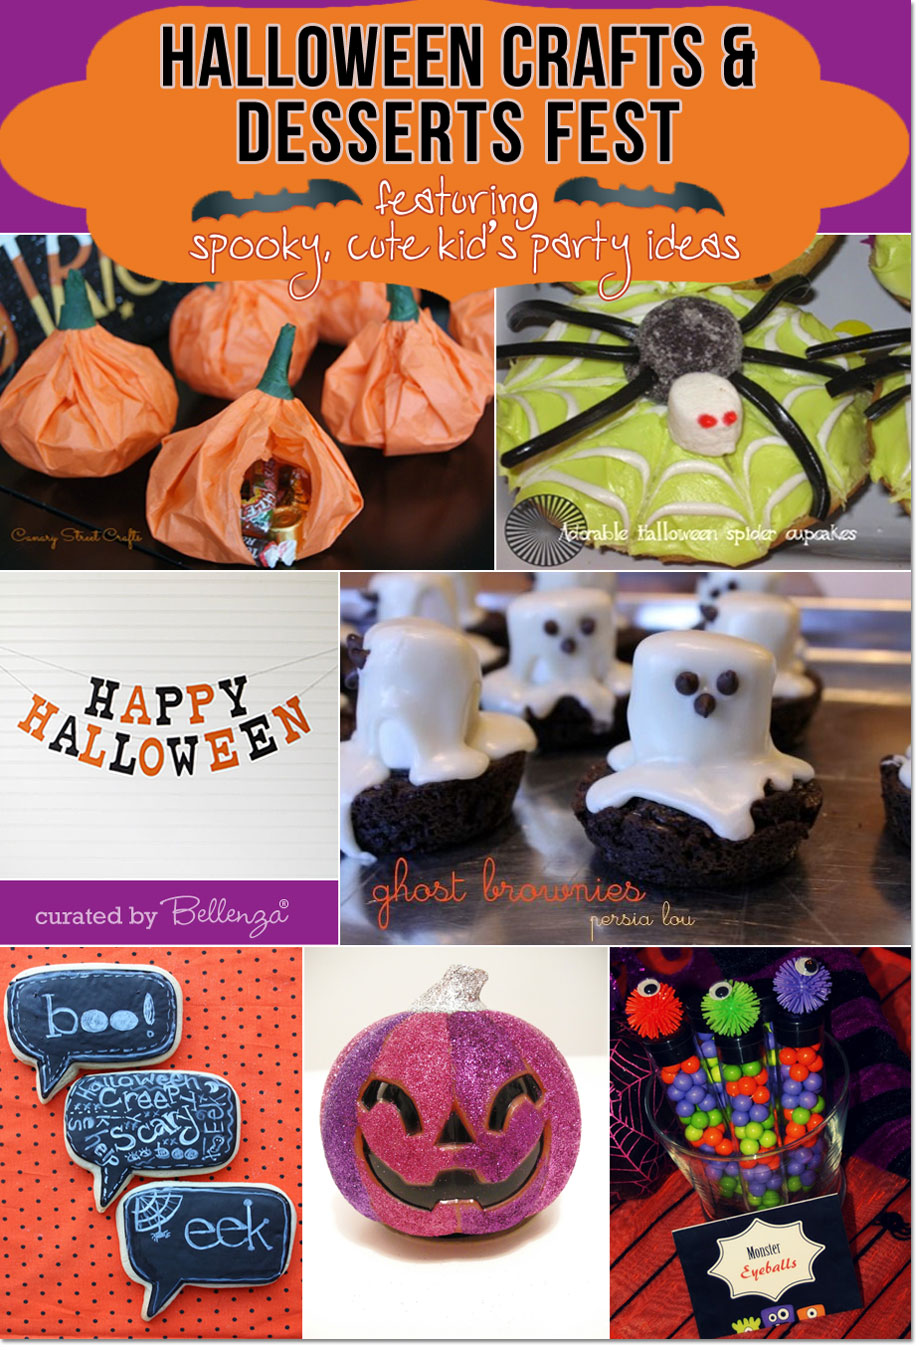 Spooky, cute Halloween Ideas for a Children's Party